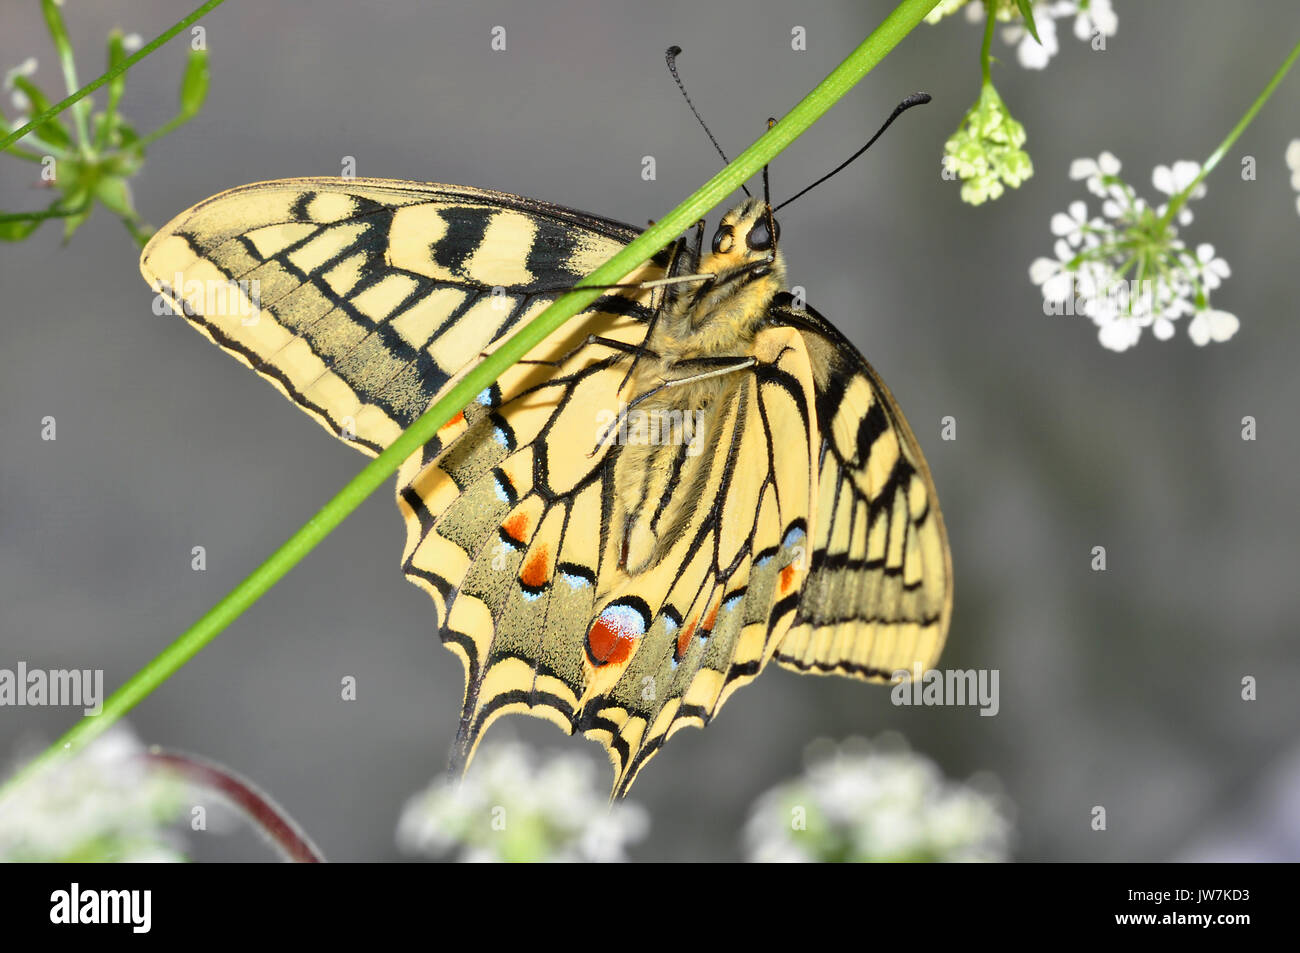 English Swallowtail Butterfly (Papilio machaon britannicus) - Stock Image